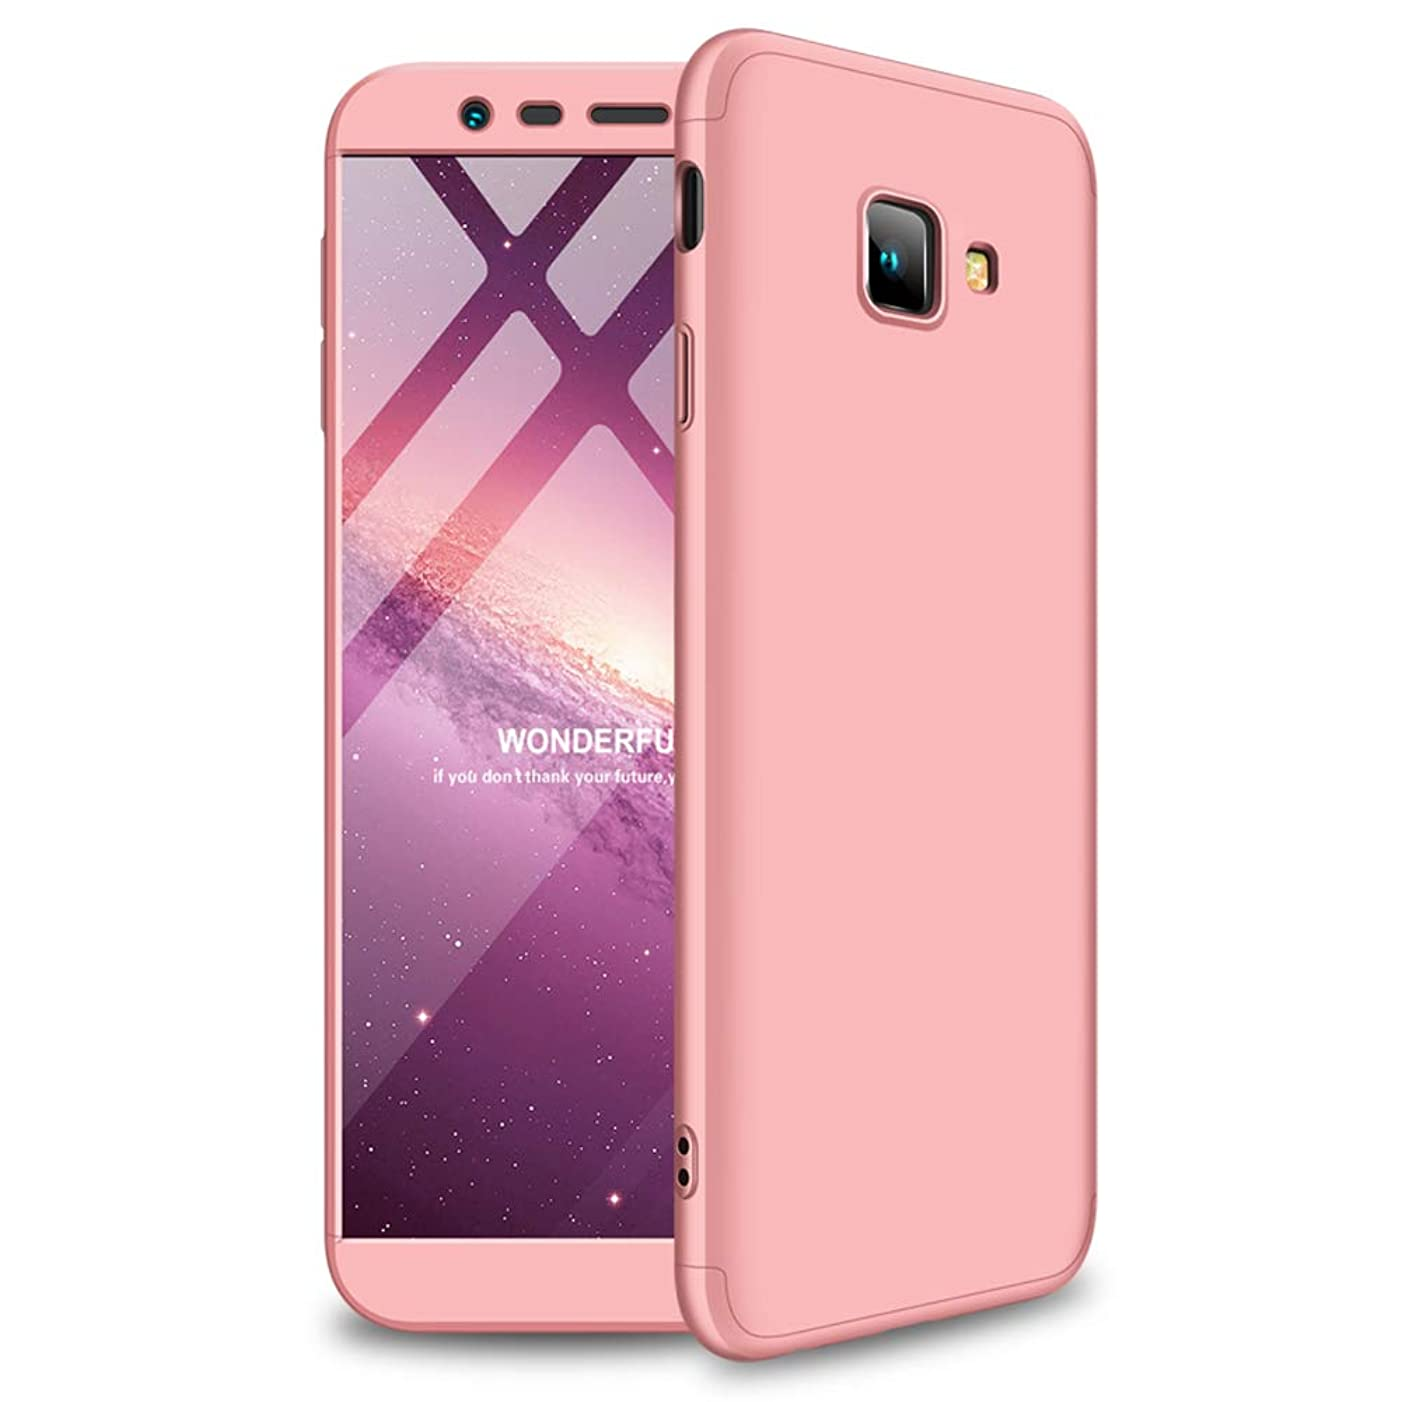 Case for Samsung Galaxy J4 Plus Ultra-Thin 3 in 1 Detachable Anti-Scratch PC Hard Shockproof Cover for Samsung Galaxy J4+ (Rose Gold, Galaxy J4 Plus)